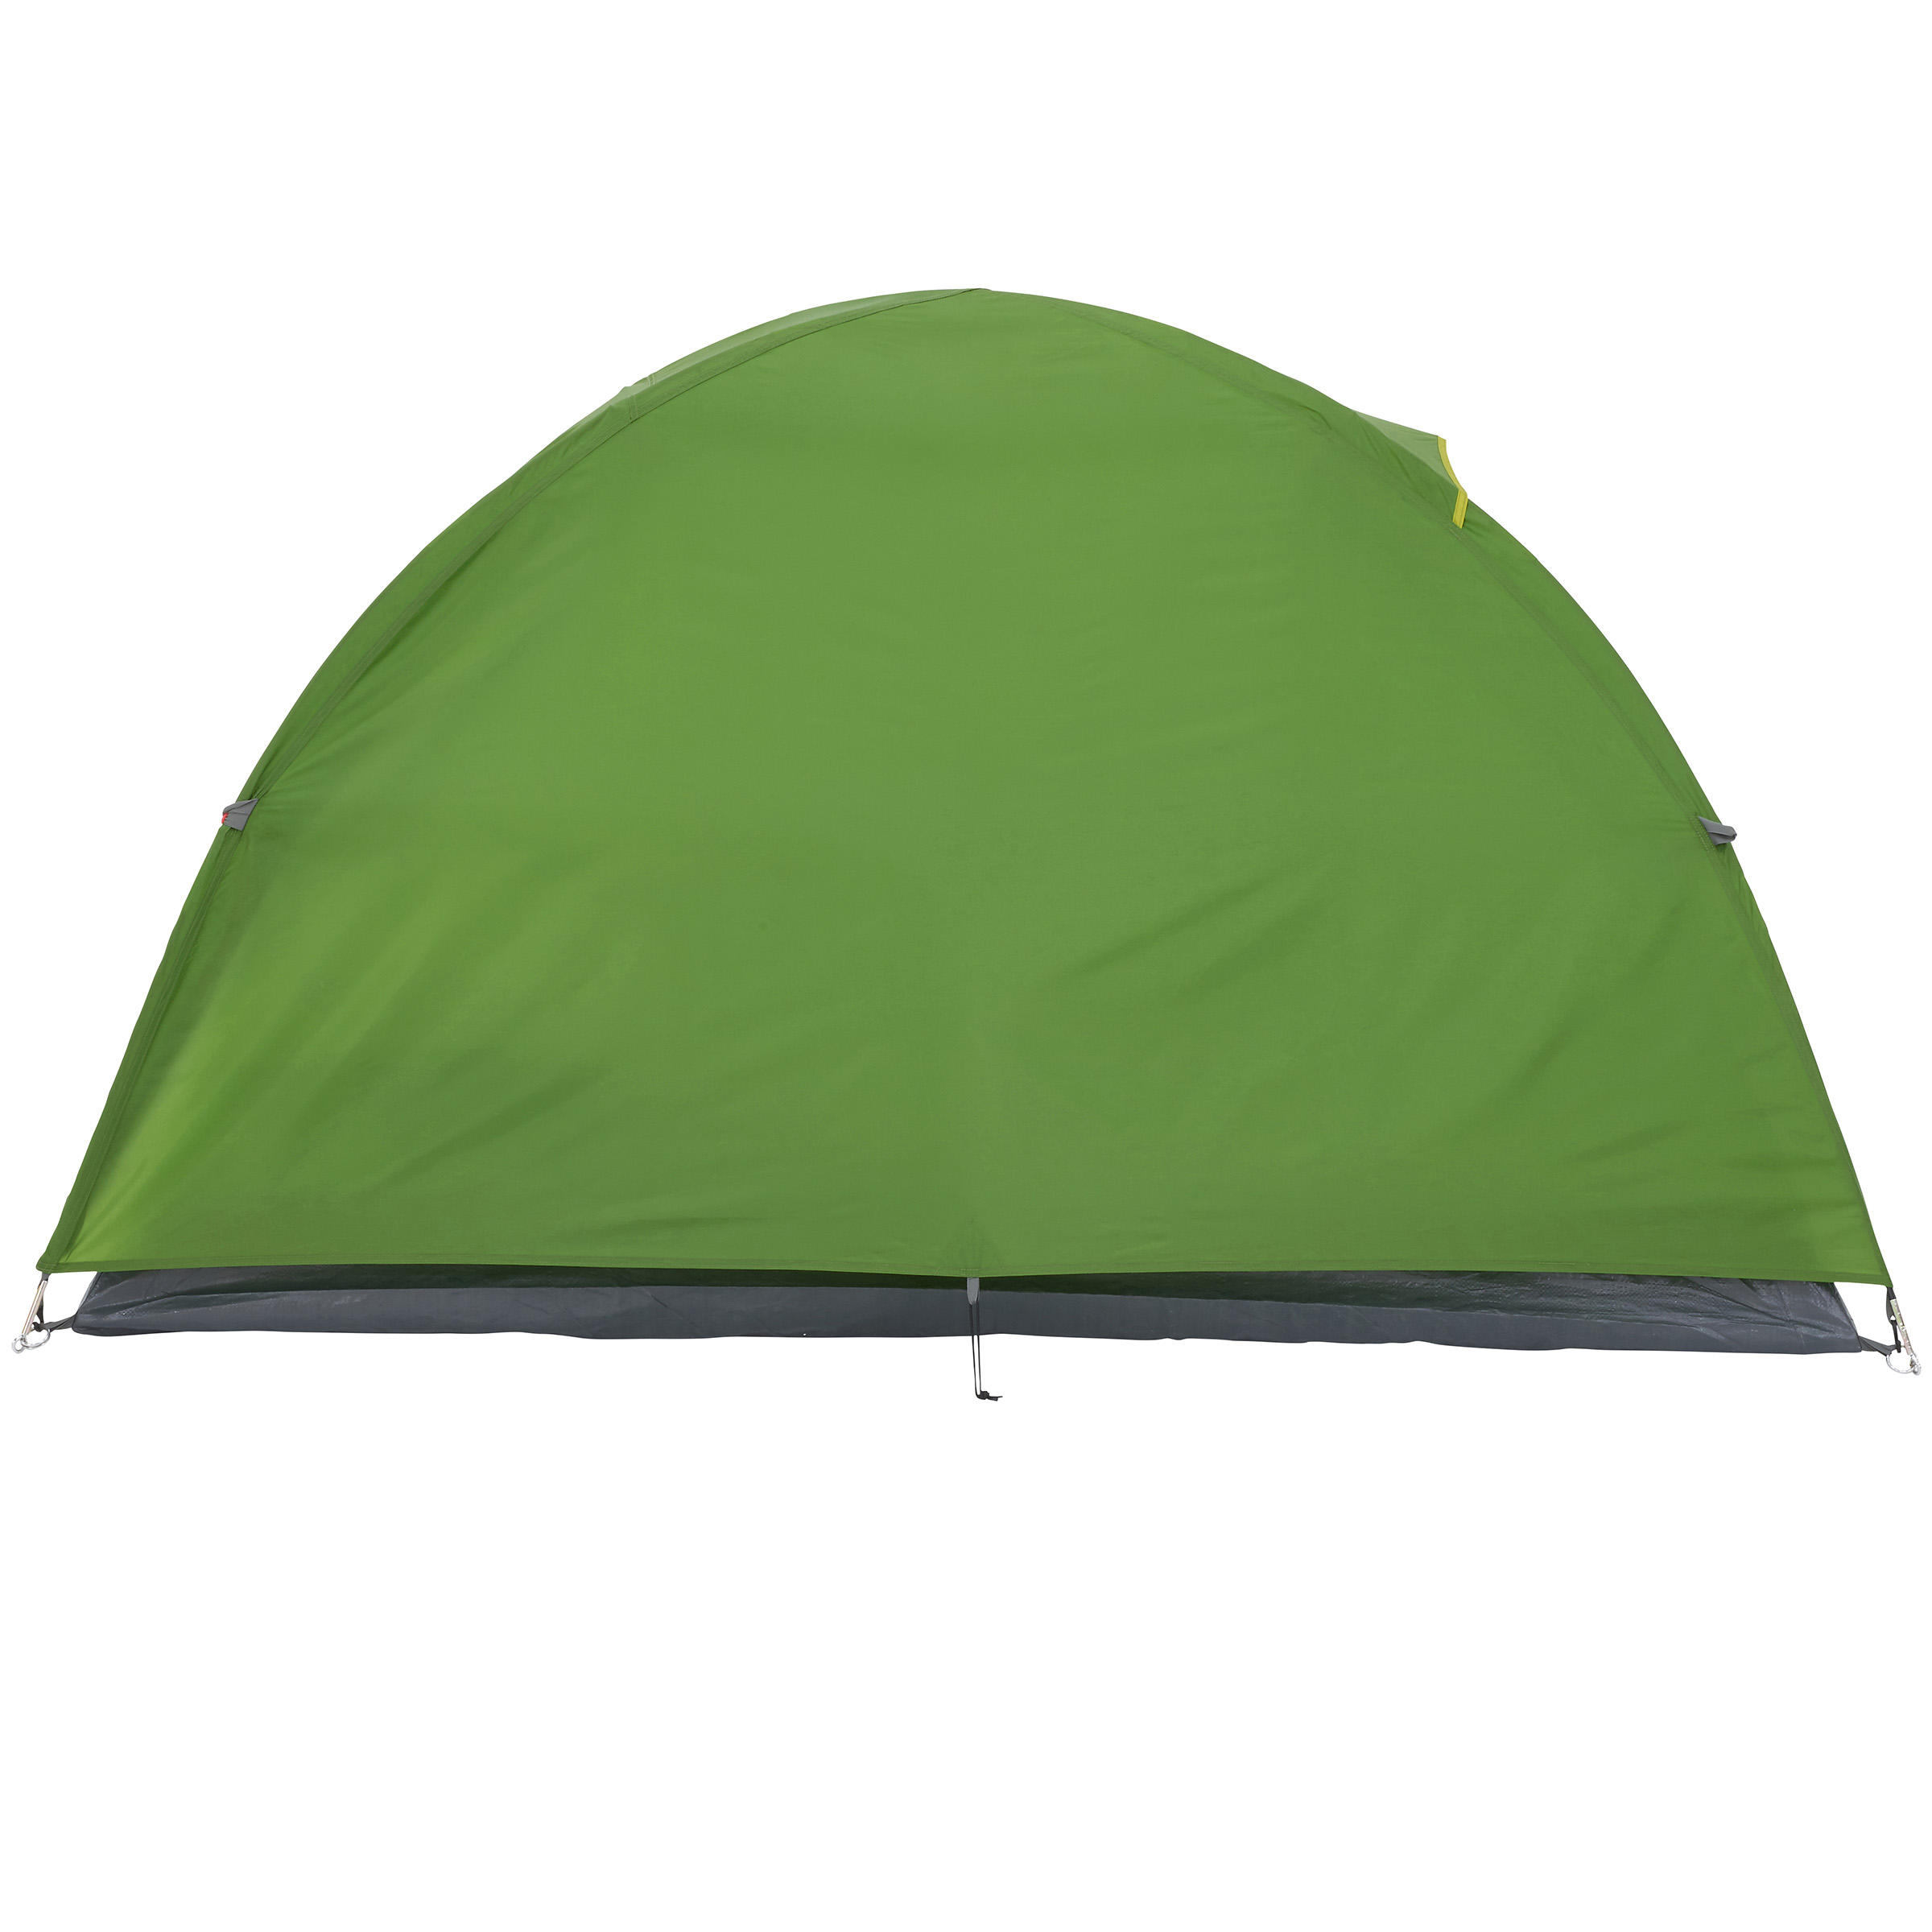 ARPENAZ camping tent _PIPE_ 2 person green